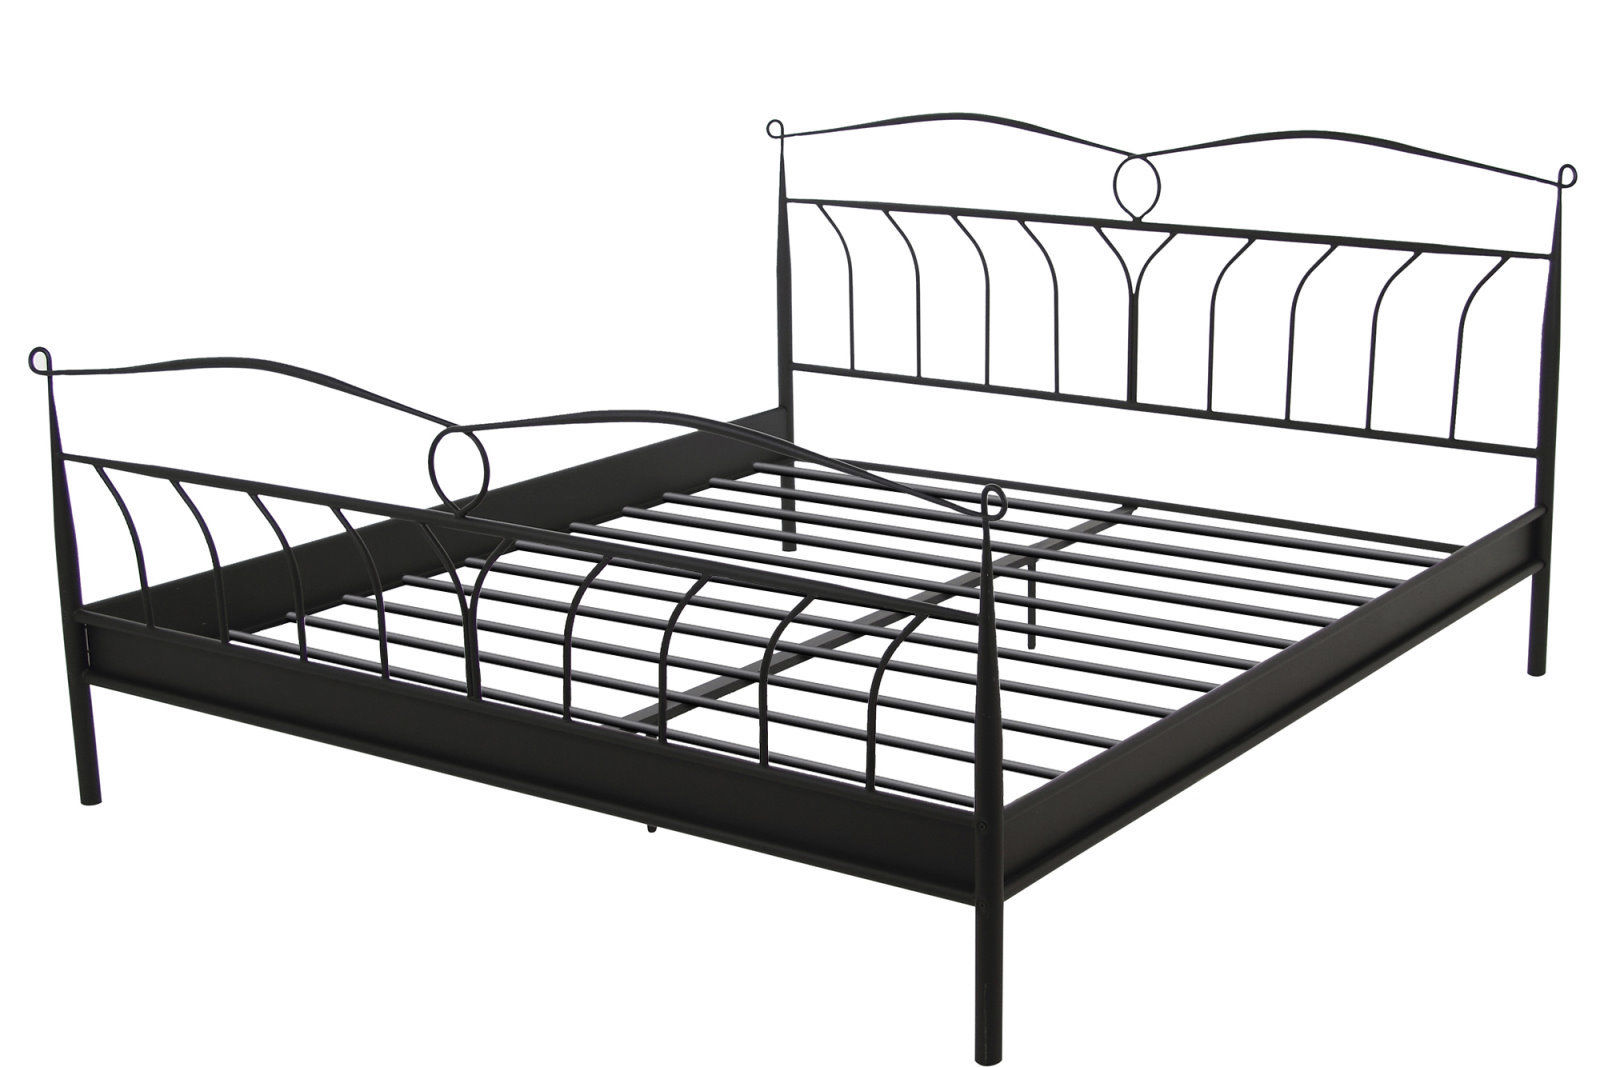 pkline metallbett schwarz 180x200 bett doppelbett ehebett. Black Bedroom Furniture Sets. Home Design Ideas